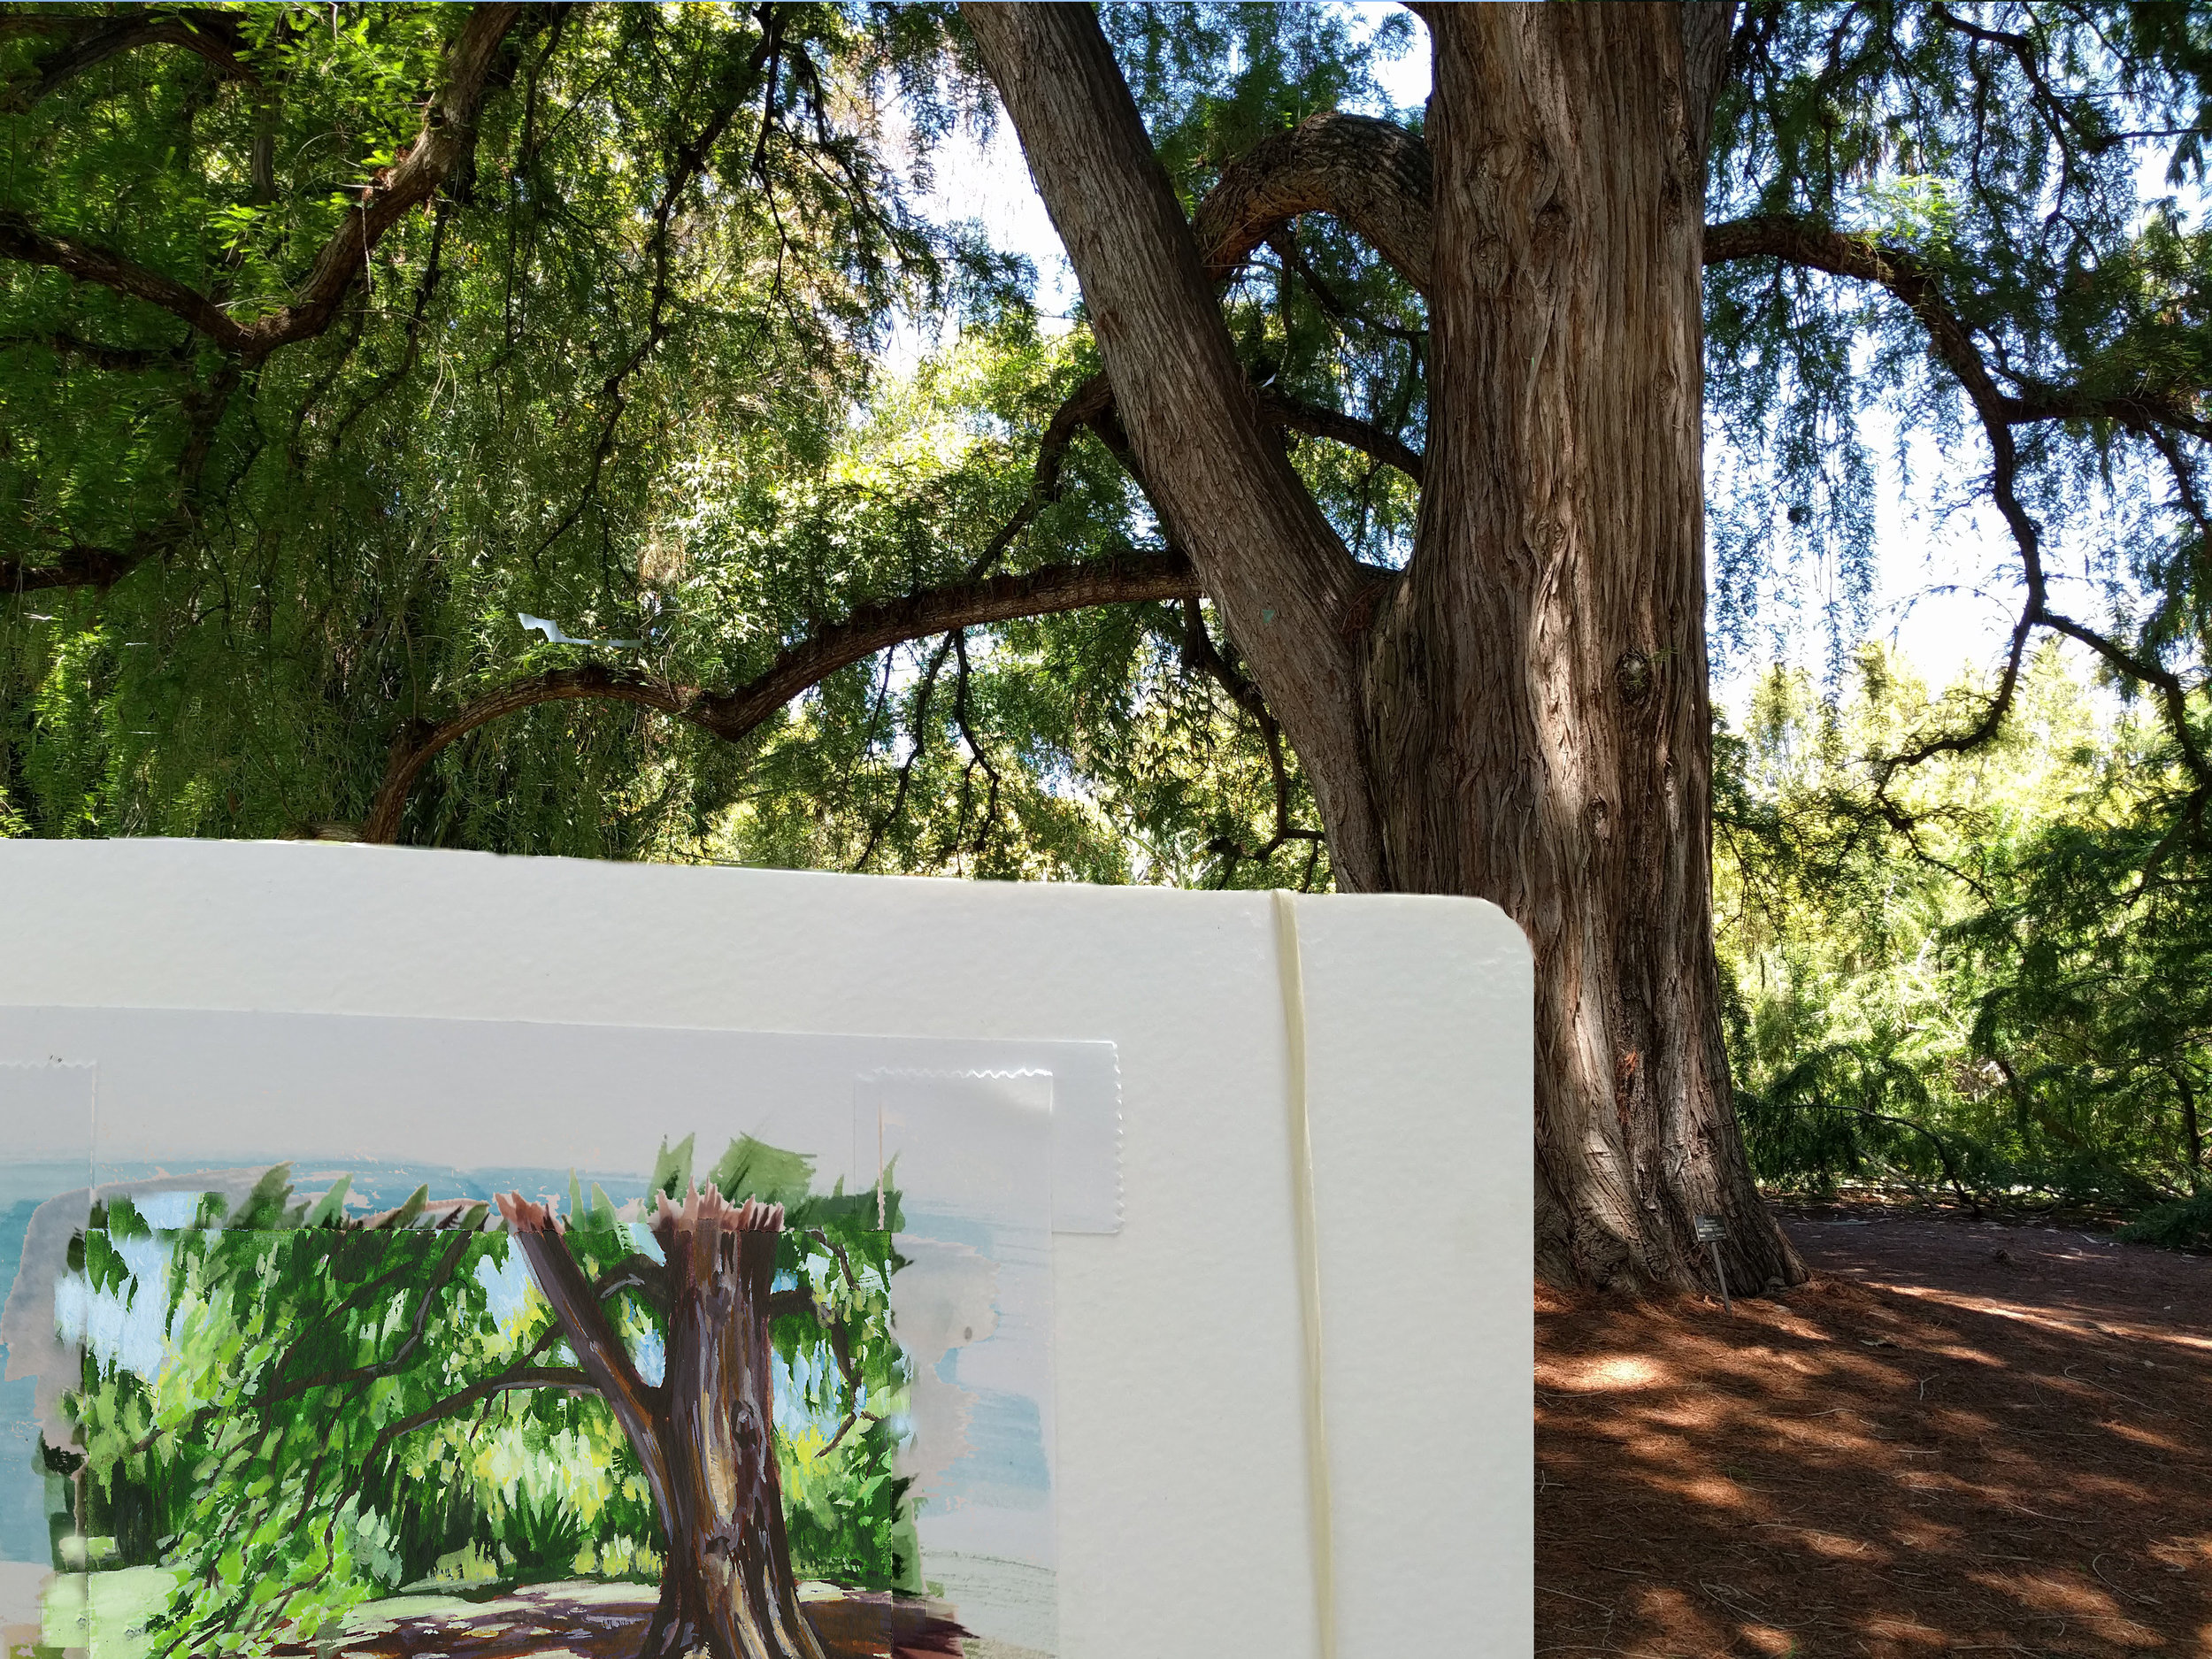 My Small paintings artist Amanda painting plein air tiny watercolour art at the Huntington Gardens, CA